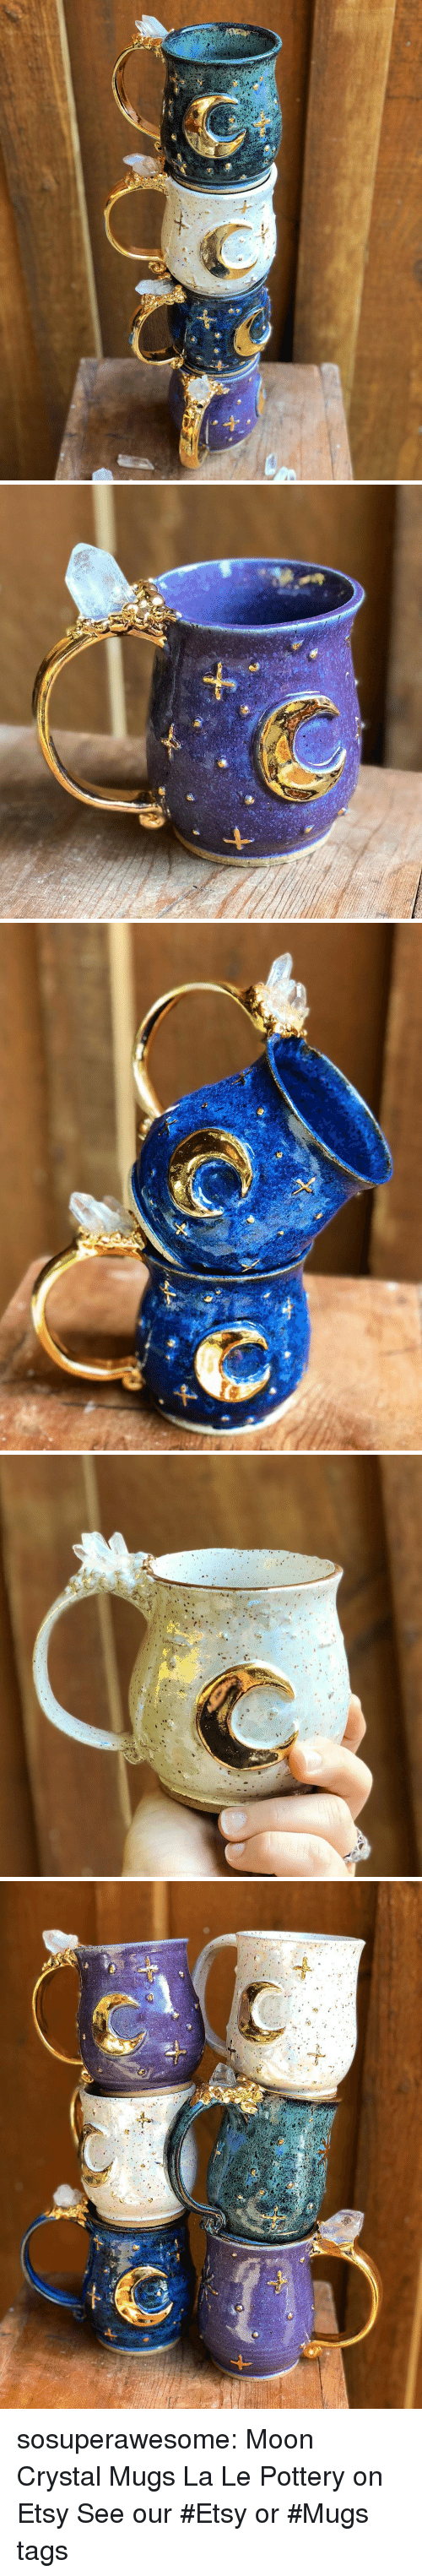 mugs: sosuperawesome: Moon Crystal Mugs La Le Pottery on Etsy See our #Etsy or #Mugs tags